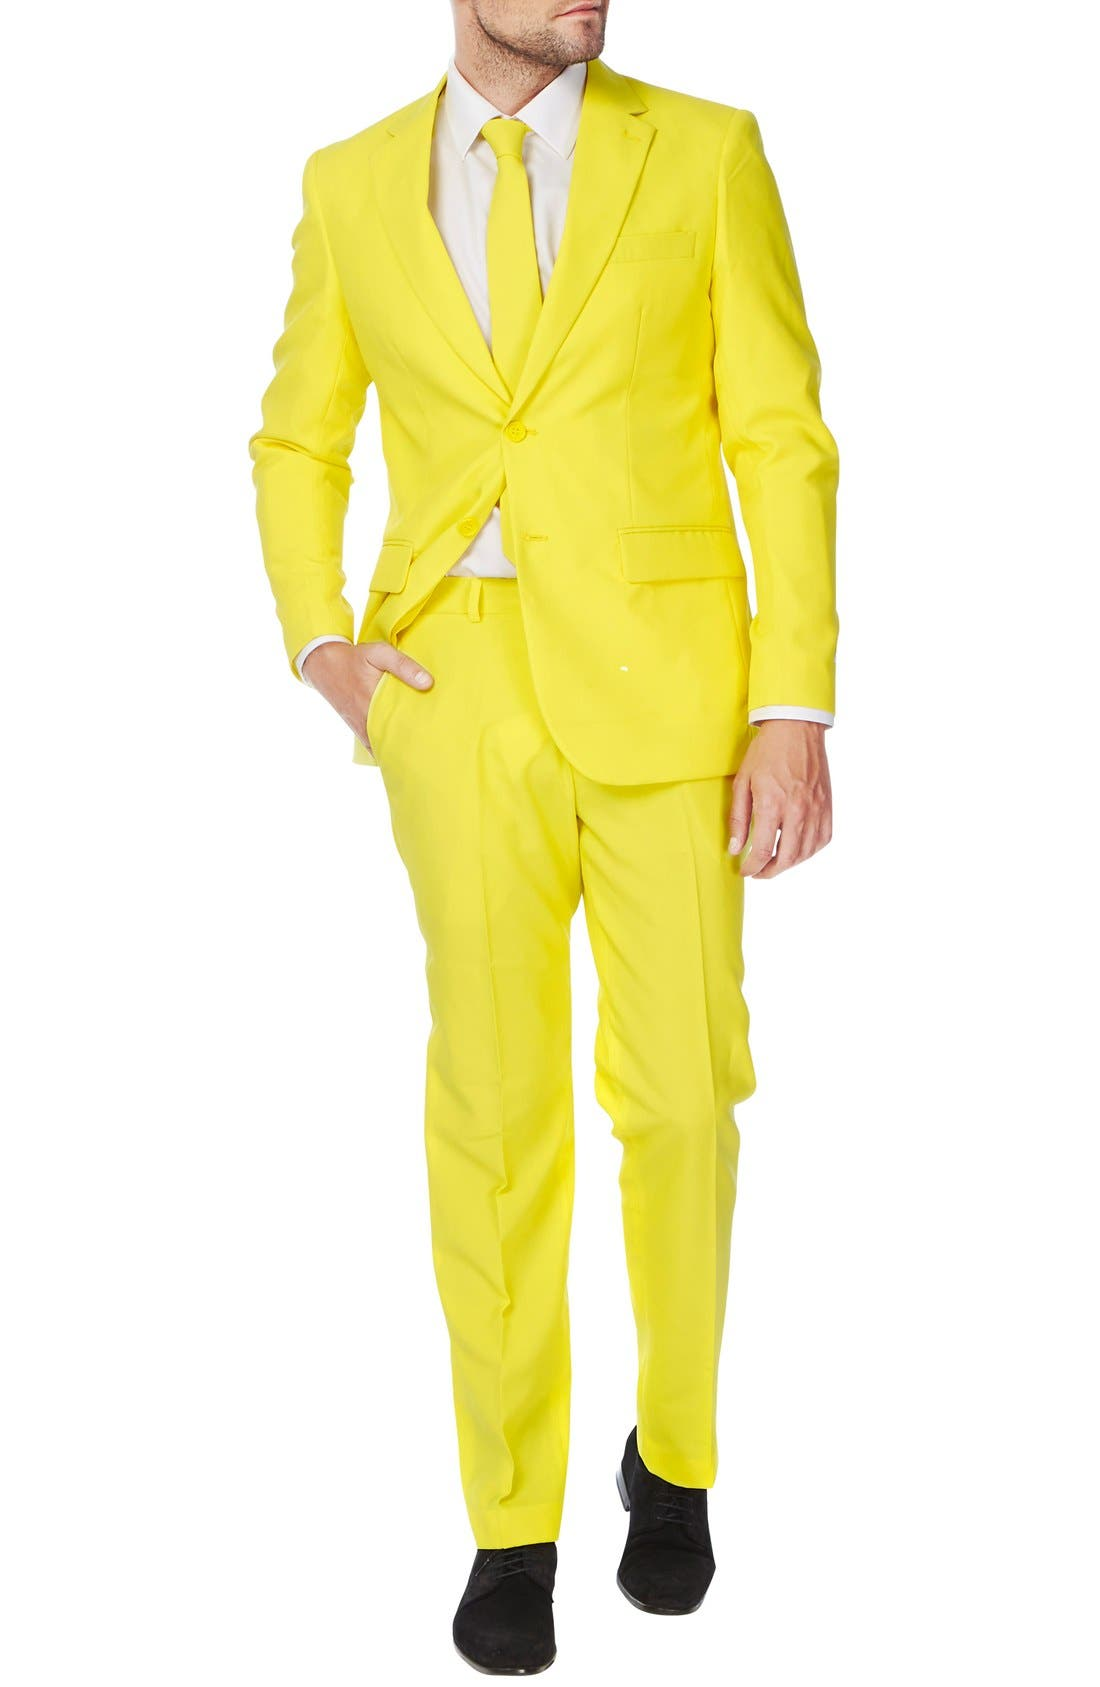 'Yellow Fellow' Trim Fit Two-Piece Suit with Tie,                             Alternate thumbnail 4, color,                             Yellow